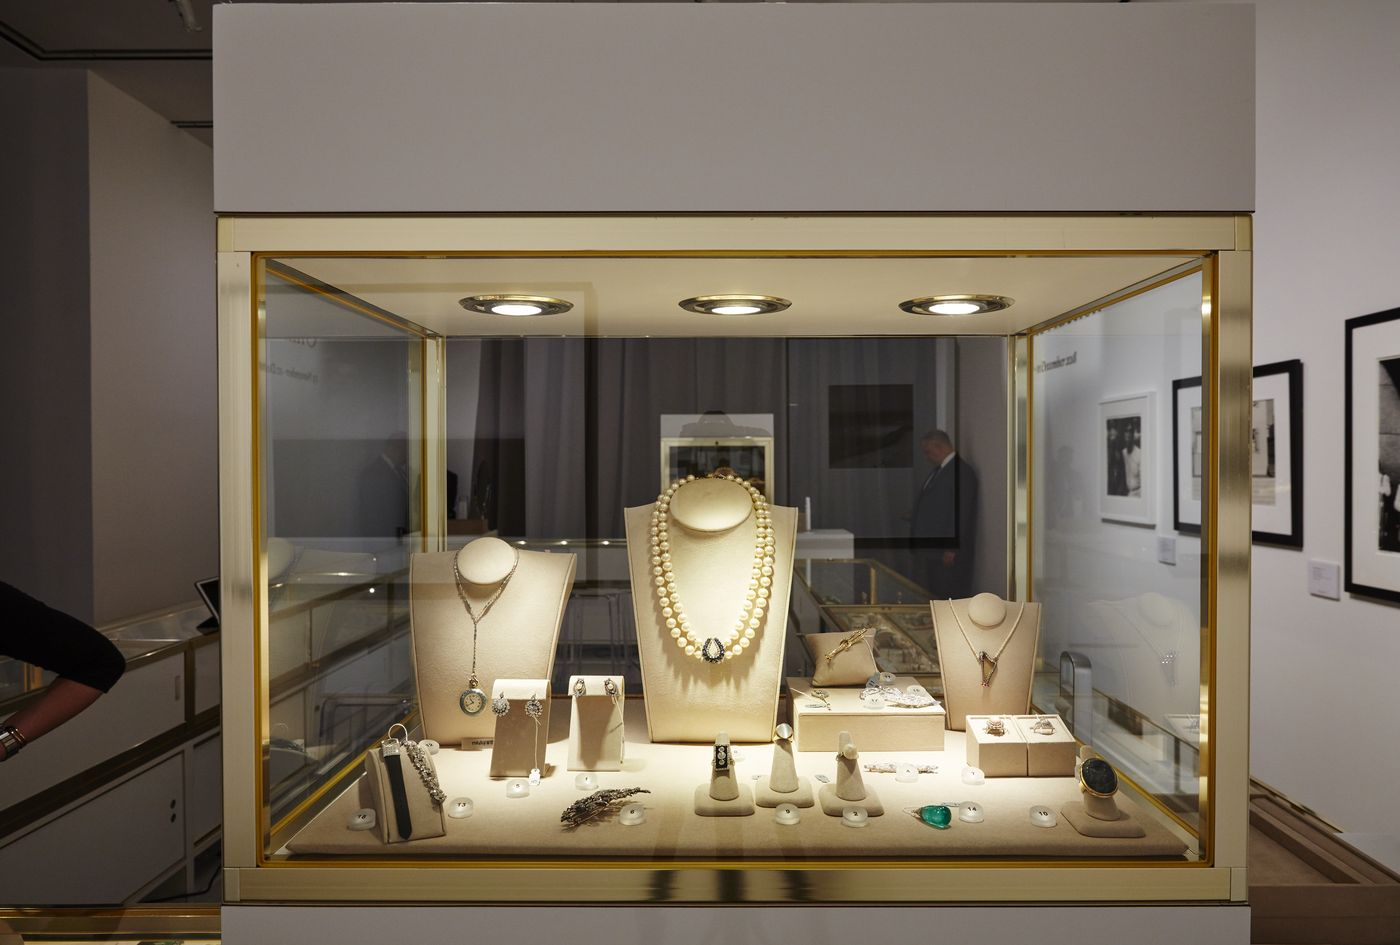 Our Jewels team in New York shares some of their favorite pieces up for auction and reflects on how they found their passion in the world of fine jewelry.